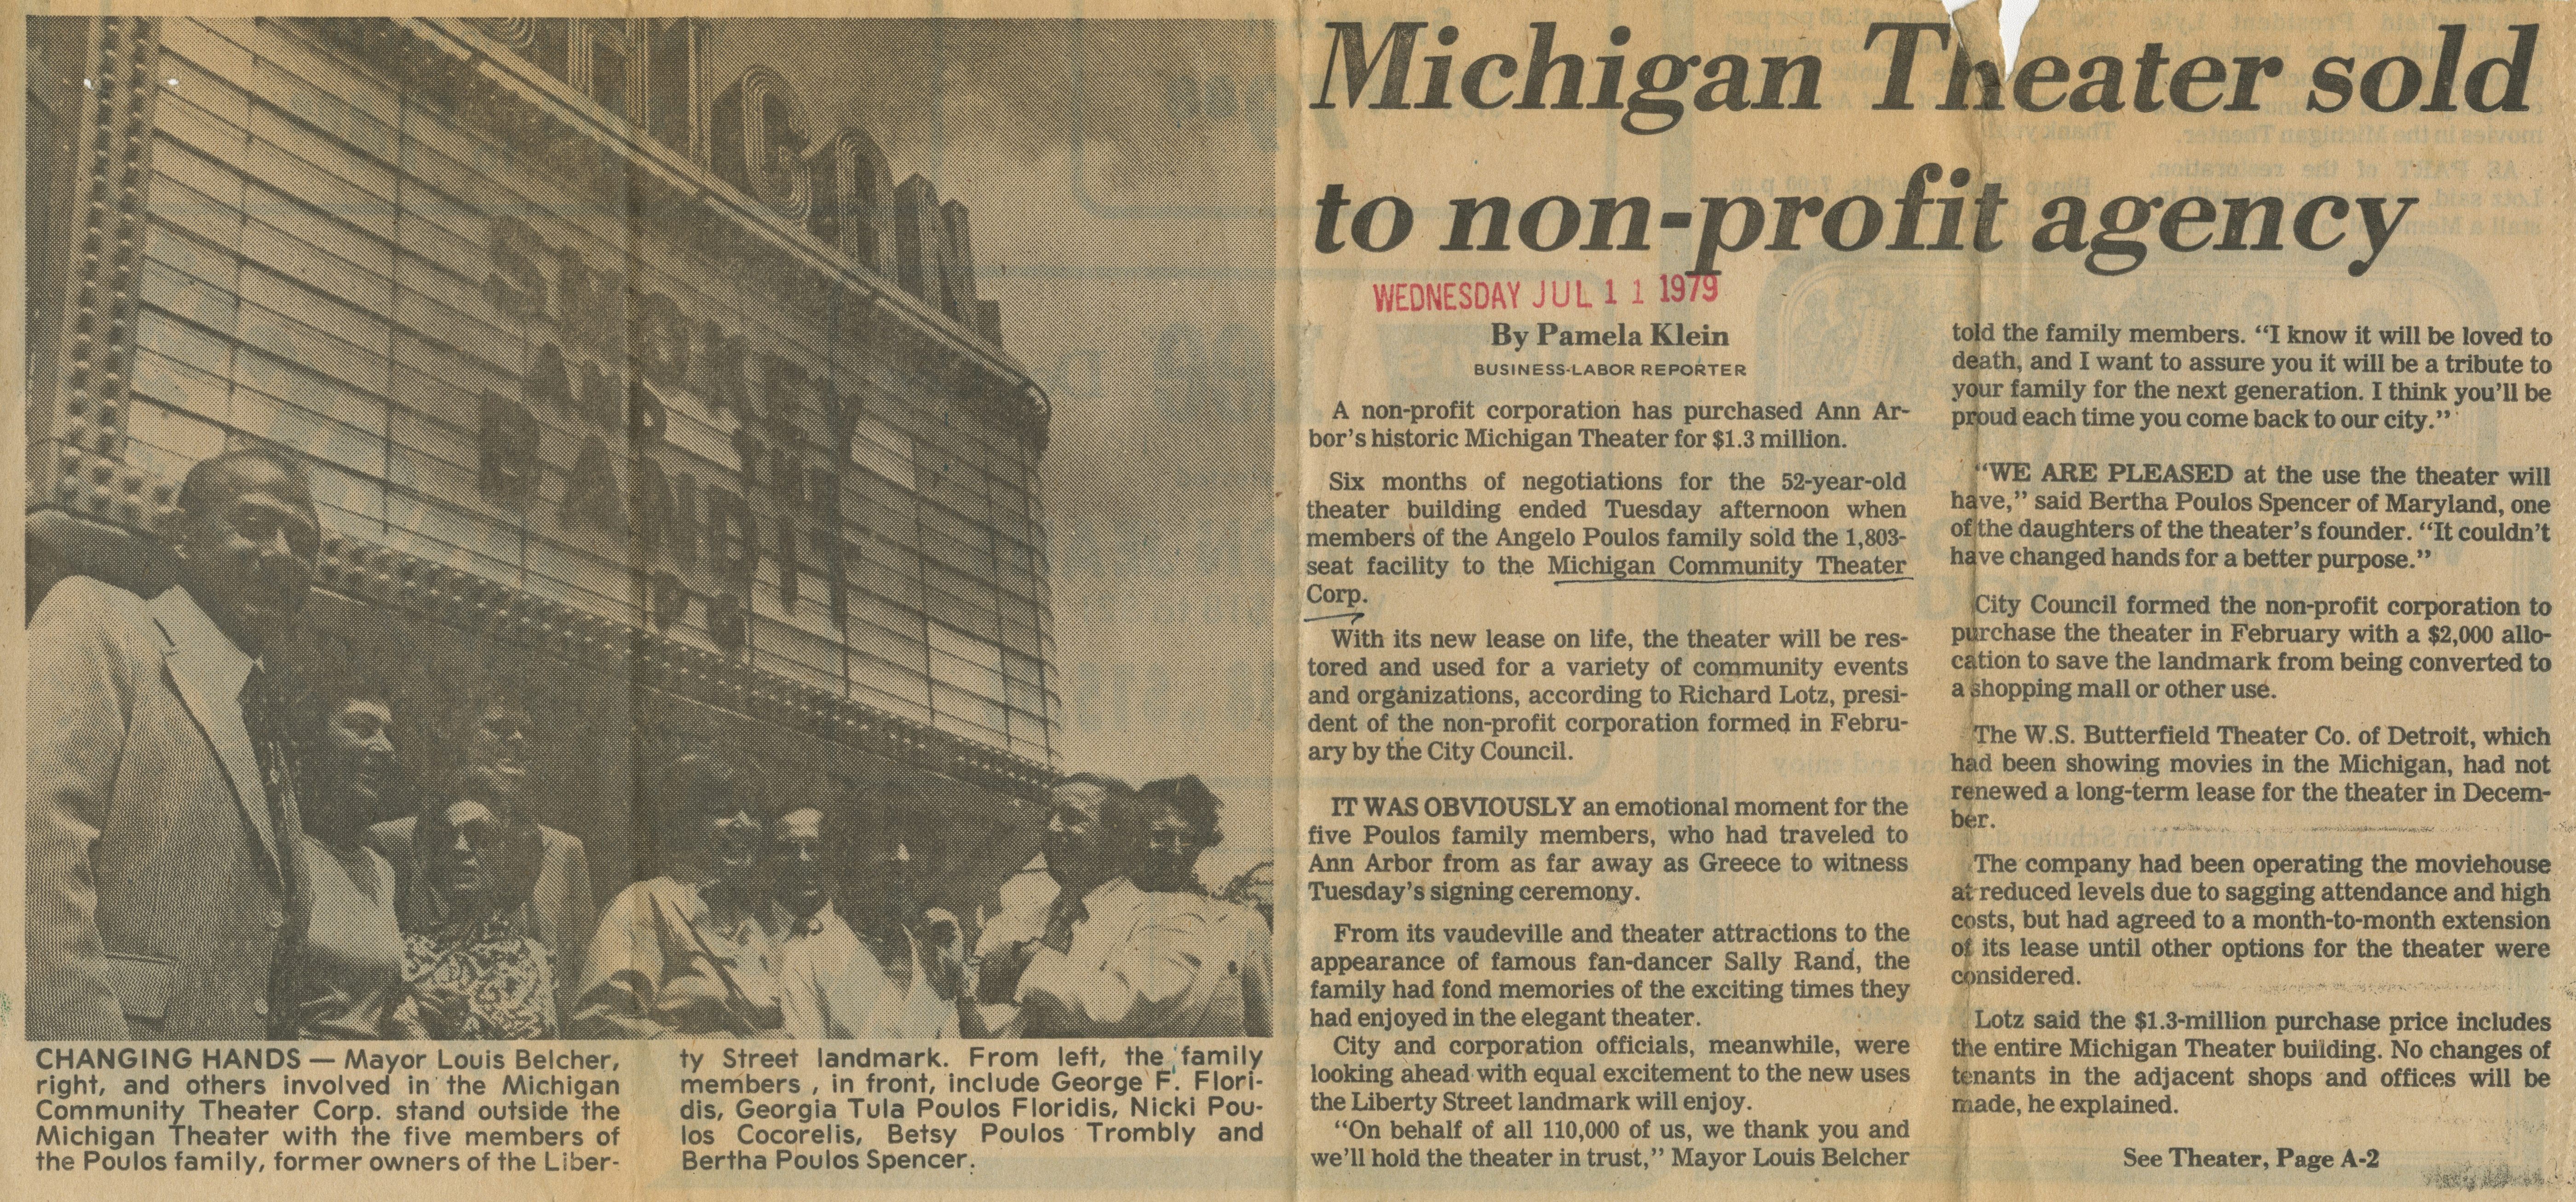 Michigan Theater Sold To Non-Profit Agency image